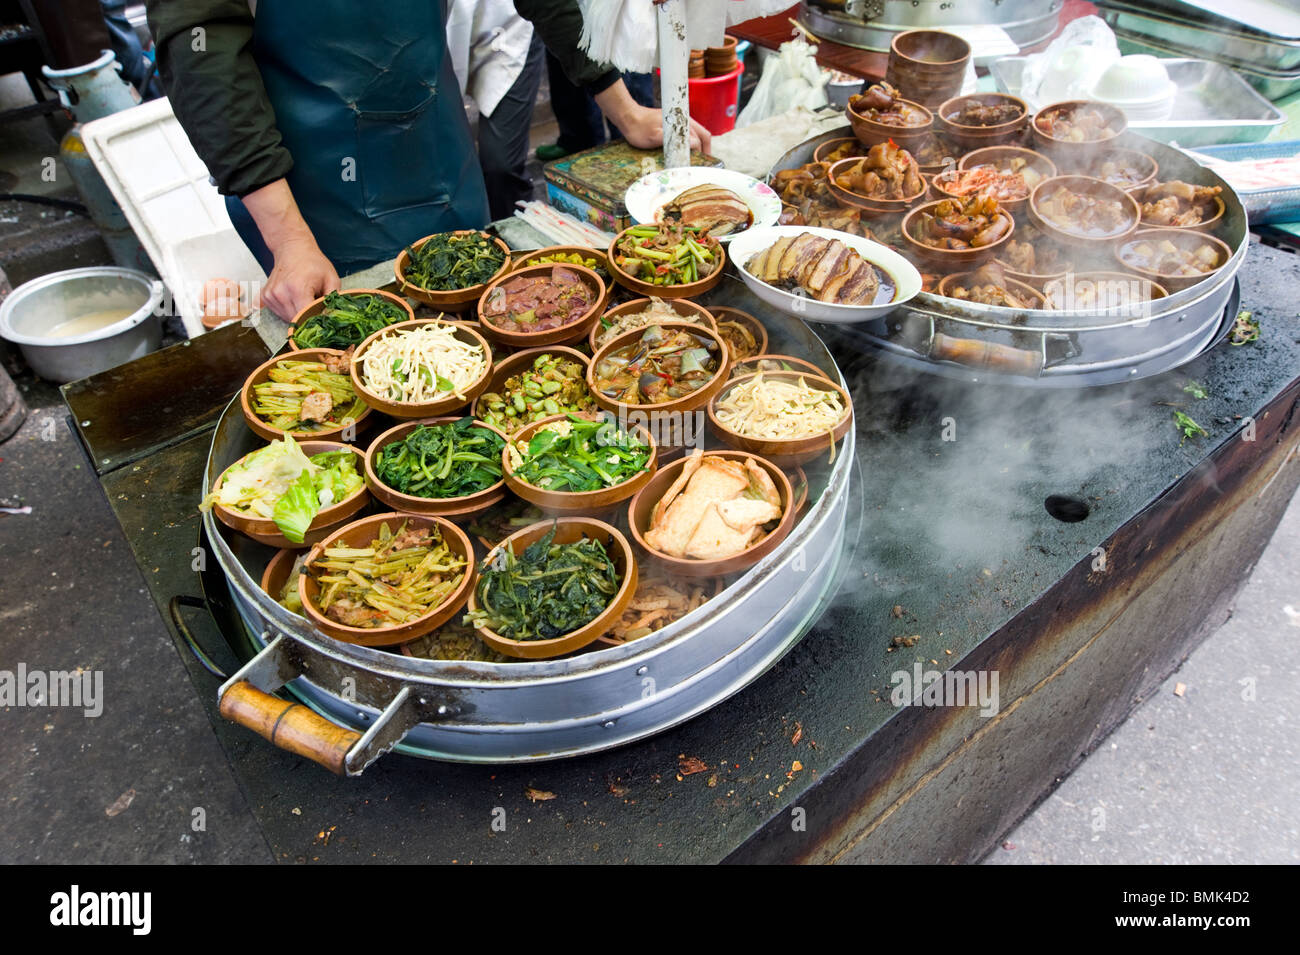 Hot Street Food, Shanghai, China Stockbild